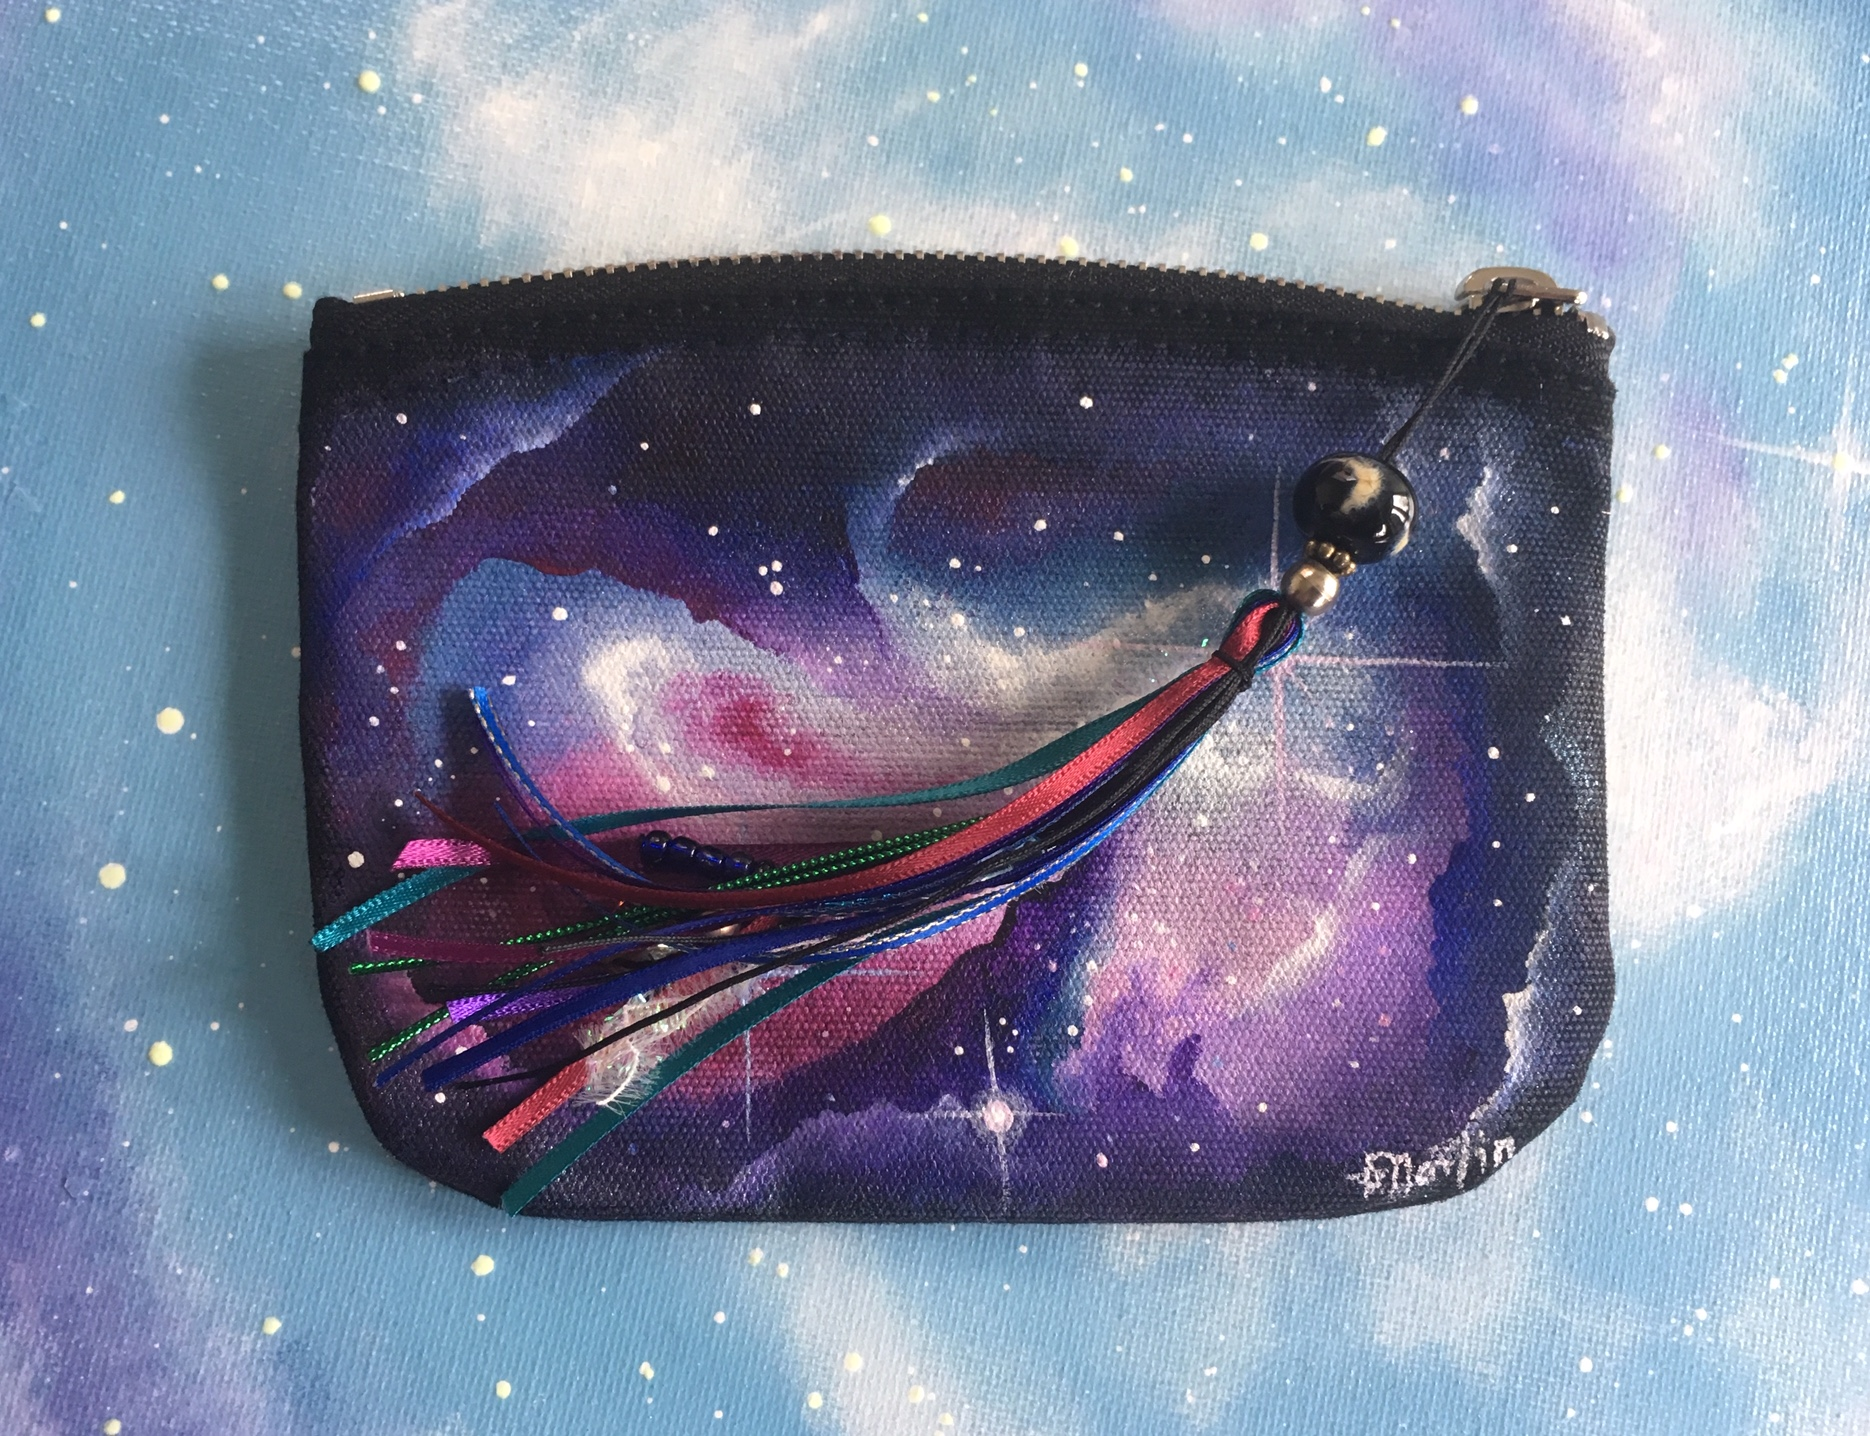 Here's the finished bag - mine! Image copyright Handmaiduns.